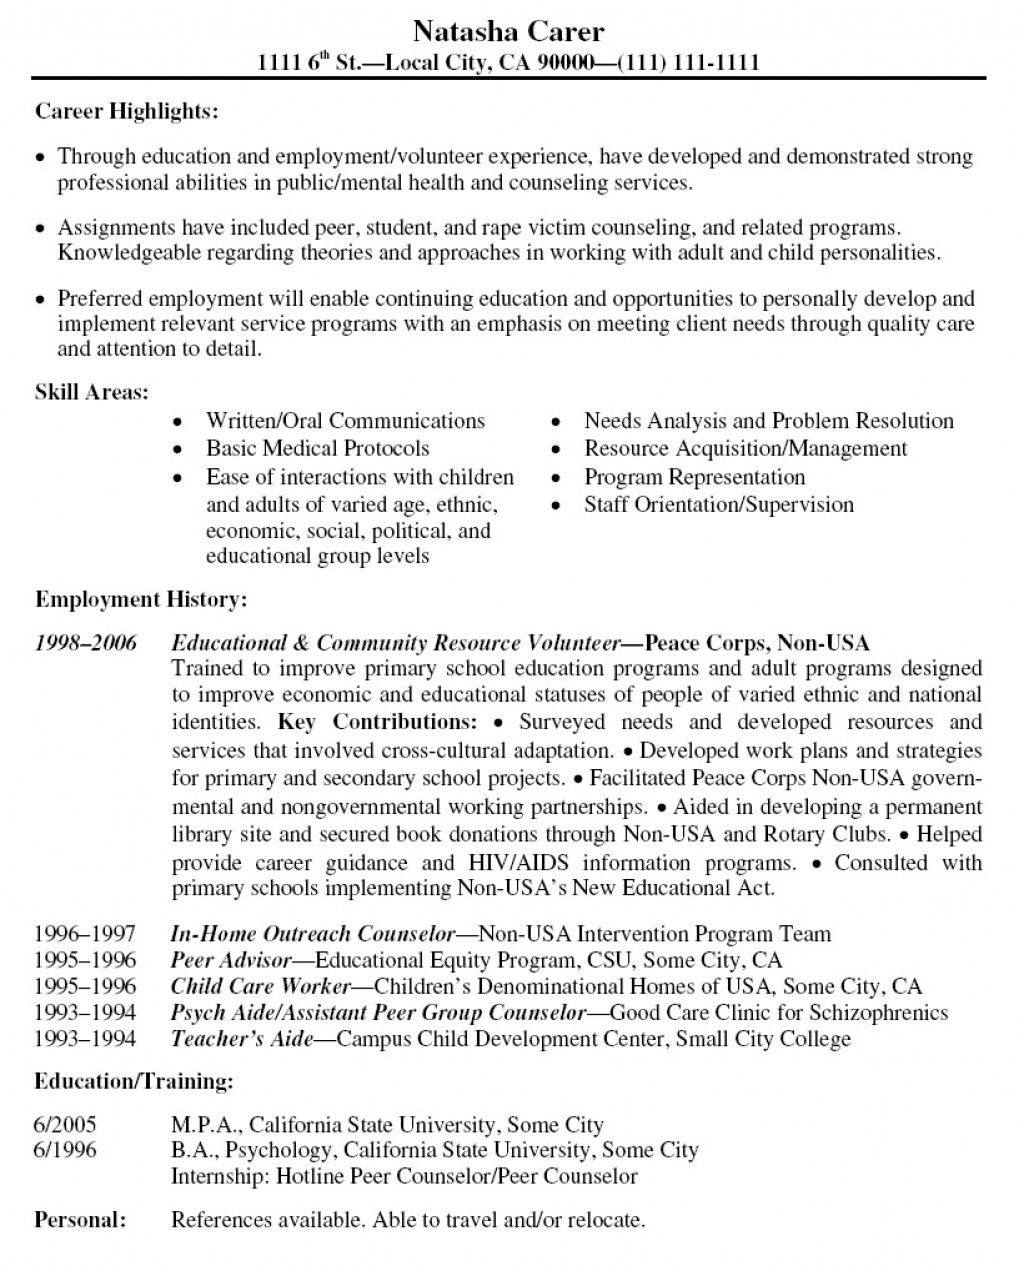 001 Volunteer Experience Essay Resume Example Latest Format L Surprising Hospital Examples Nursing Home Large